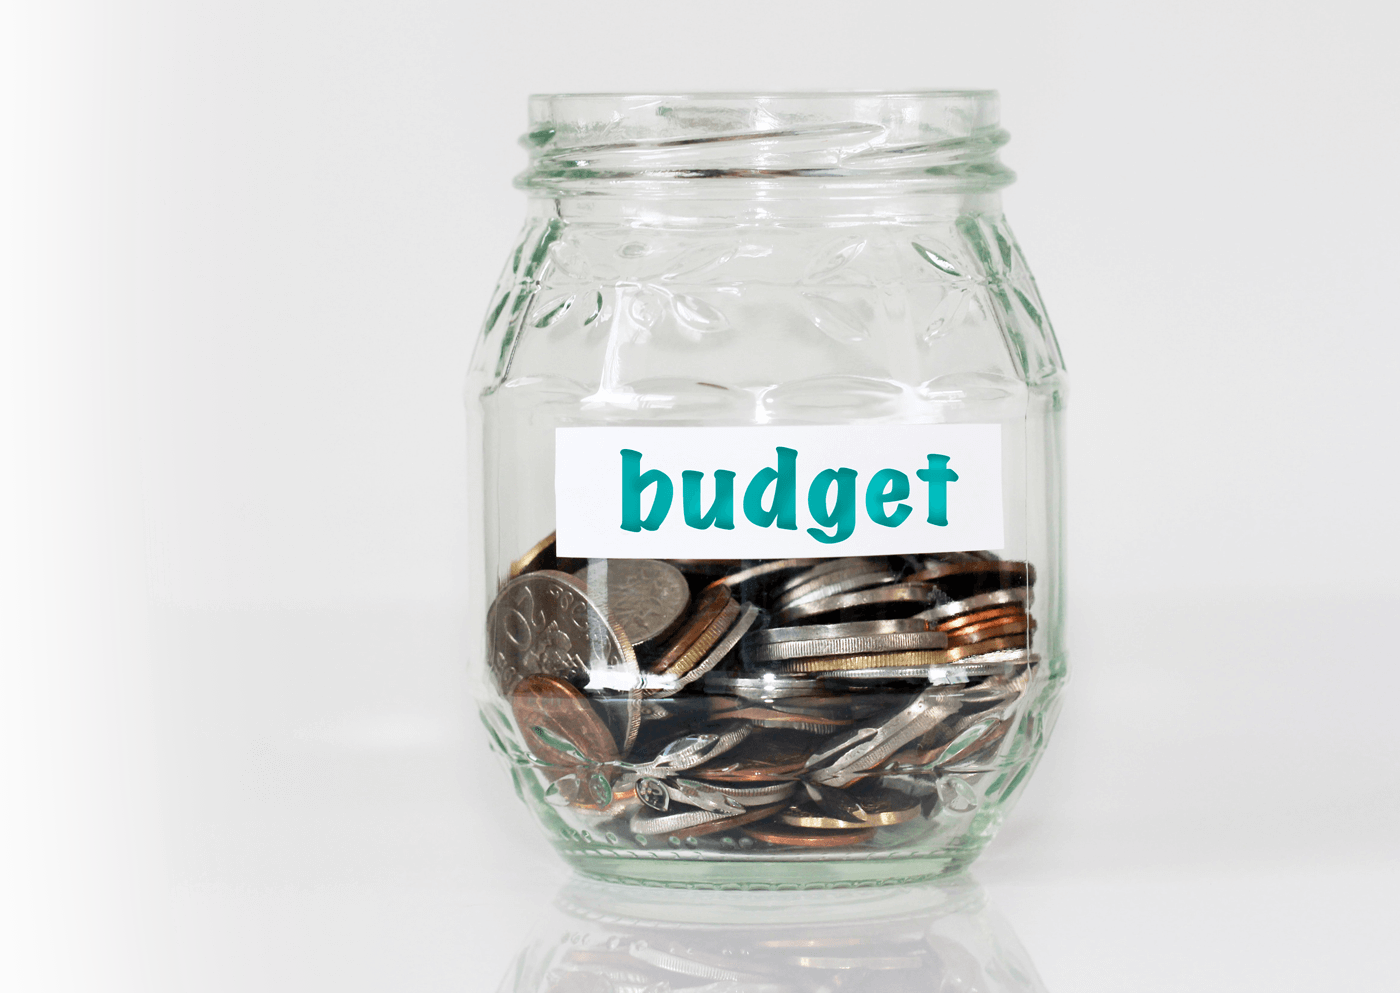 Budget - jar with coins